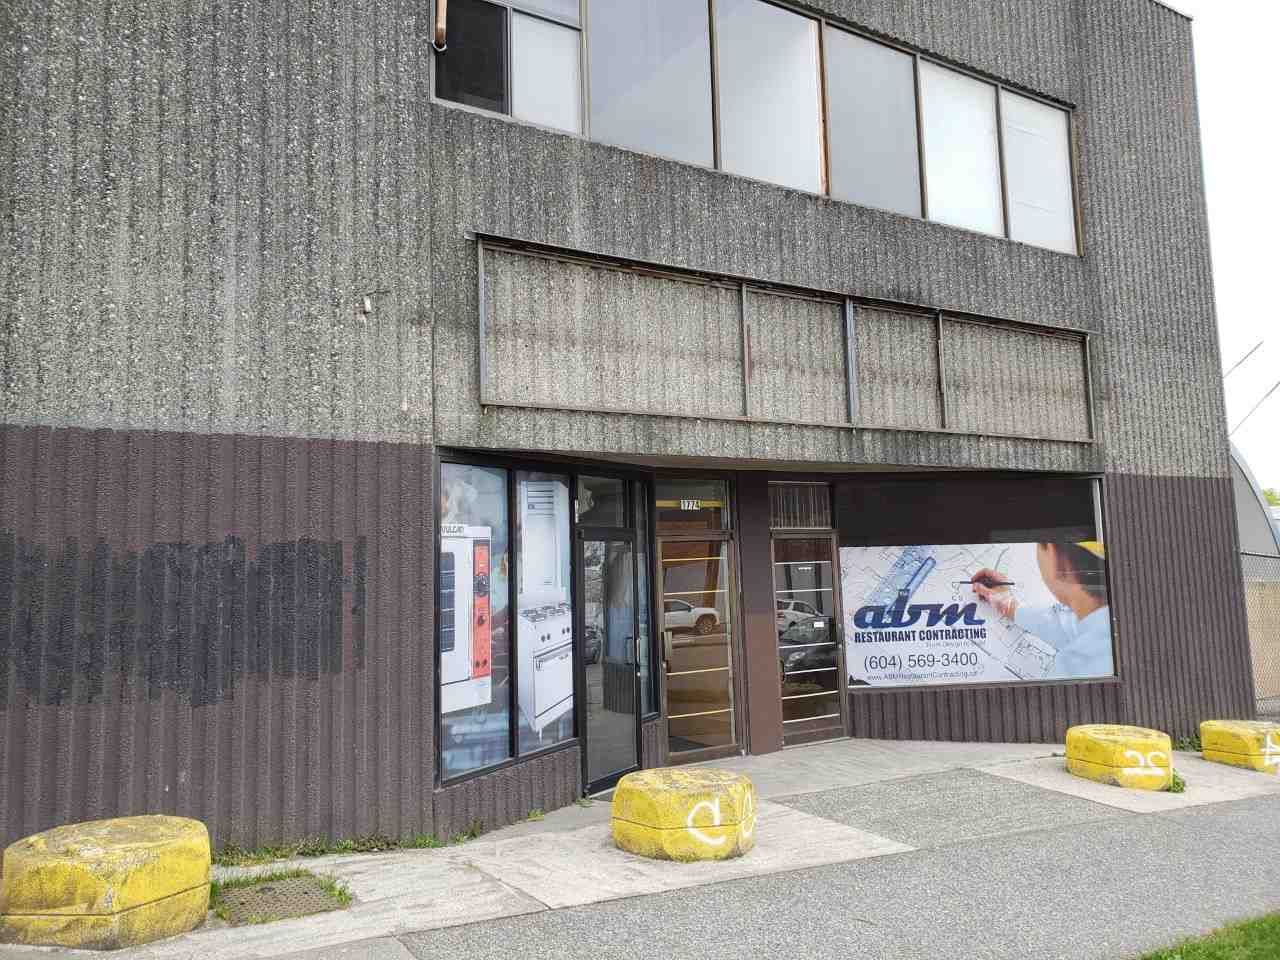 Main Photo: 1774 E HASTINGS Street in Vancouver: Hastings Industrial for lease (Vancouver East)  : MLS®# C8031891